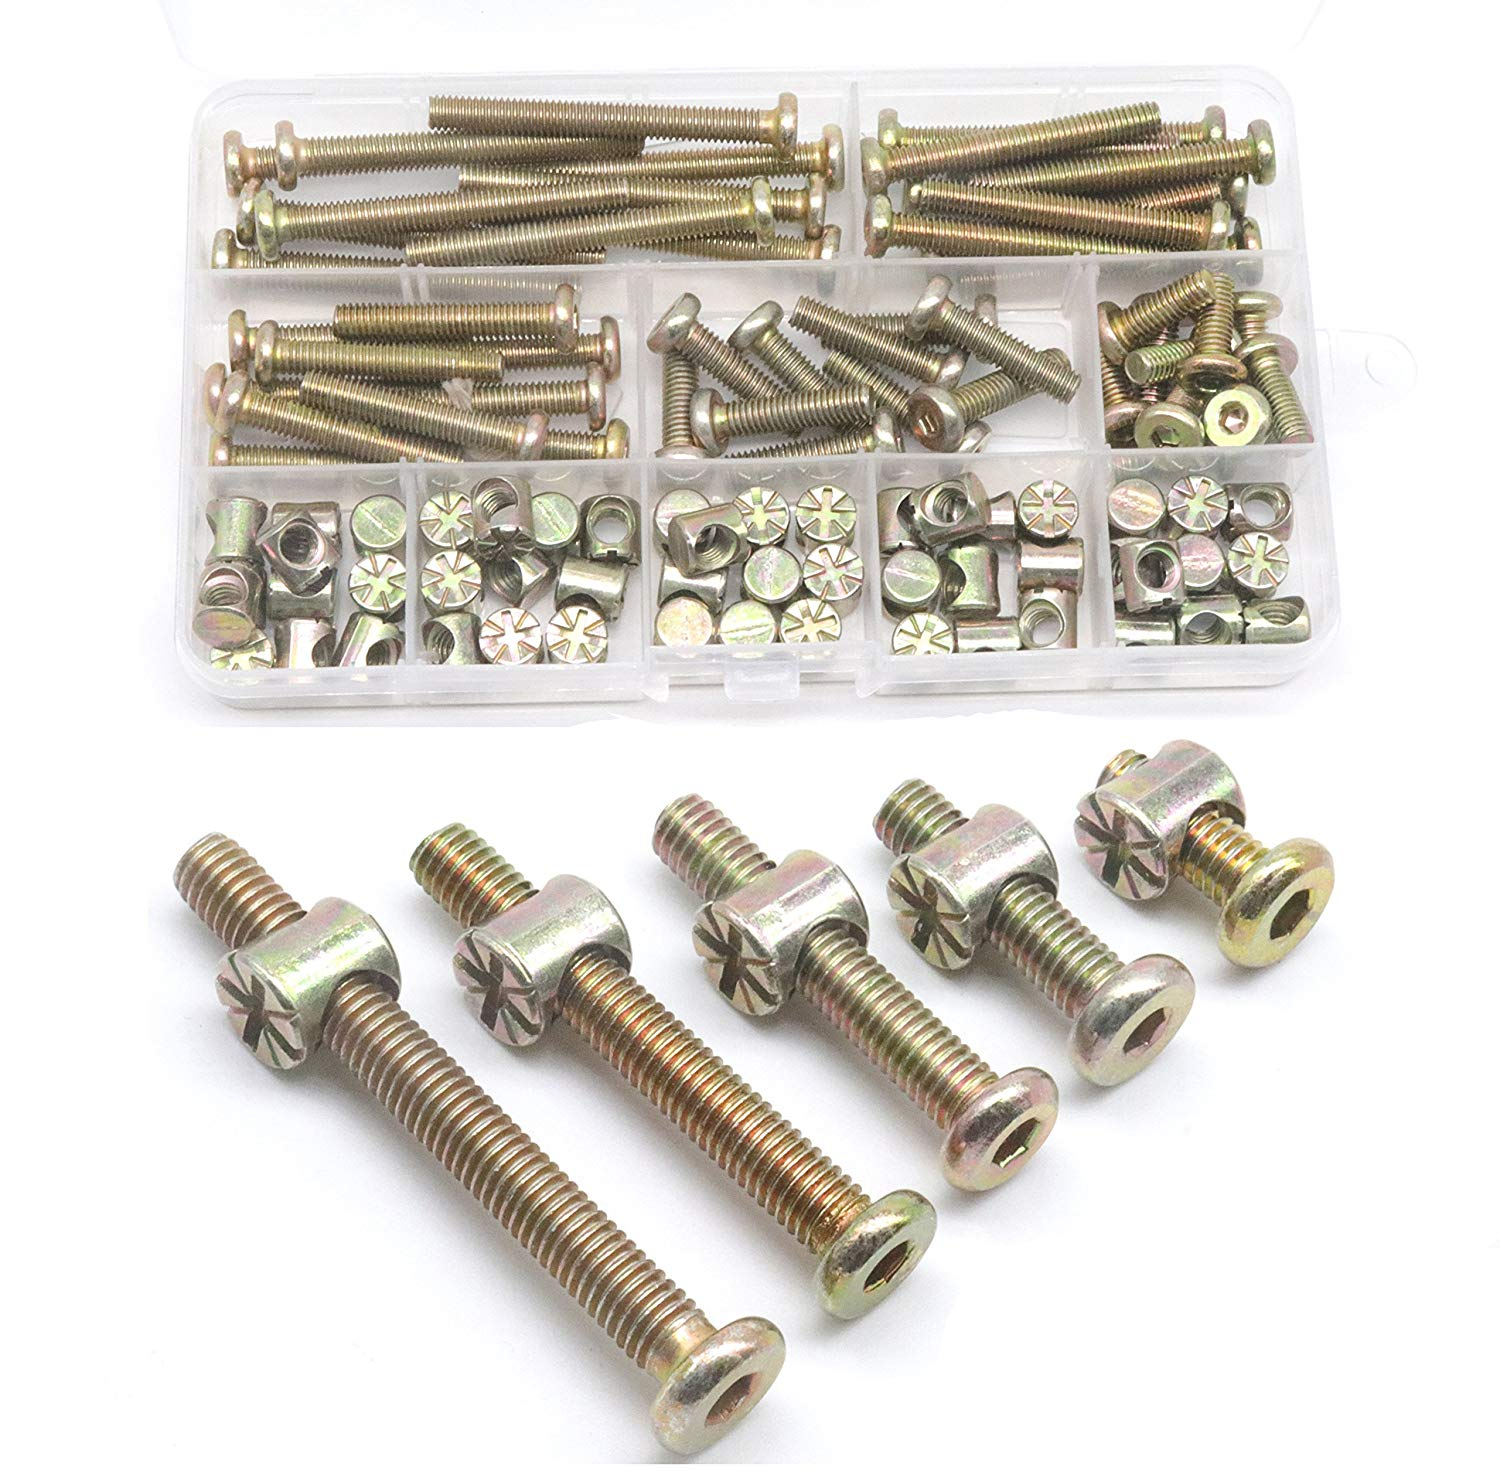 Sutemribor 120PCS M6 x 15//20 25//30 35mm Zinc Plated Hex Socket Head Cap Screws Bolts Furniture Bolts with M Barrel Nuts Assortment Kit for Furniture Cots Beds Crib and Chairs